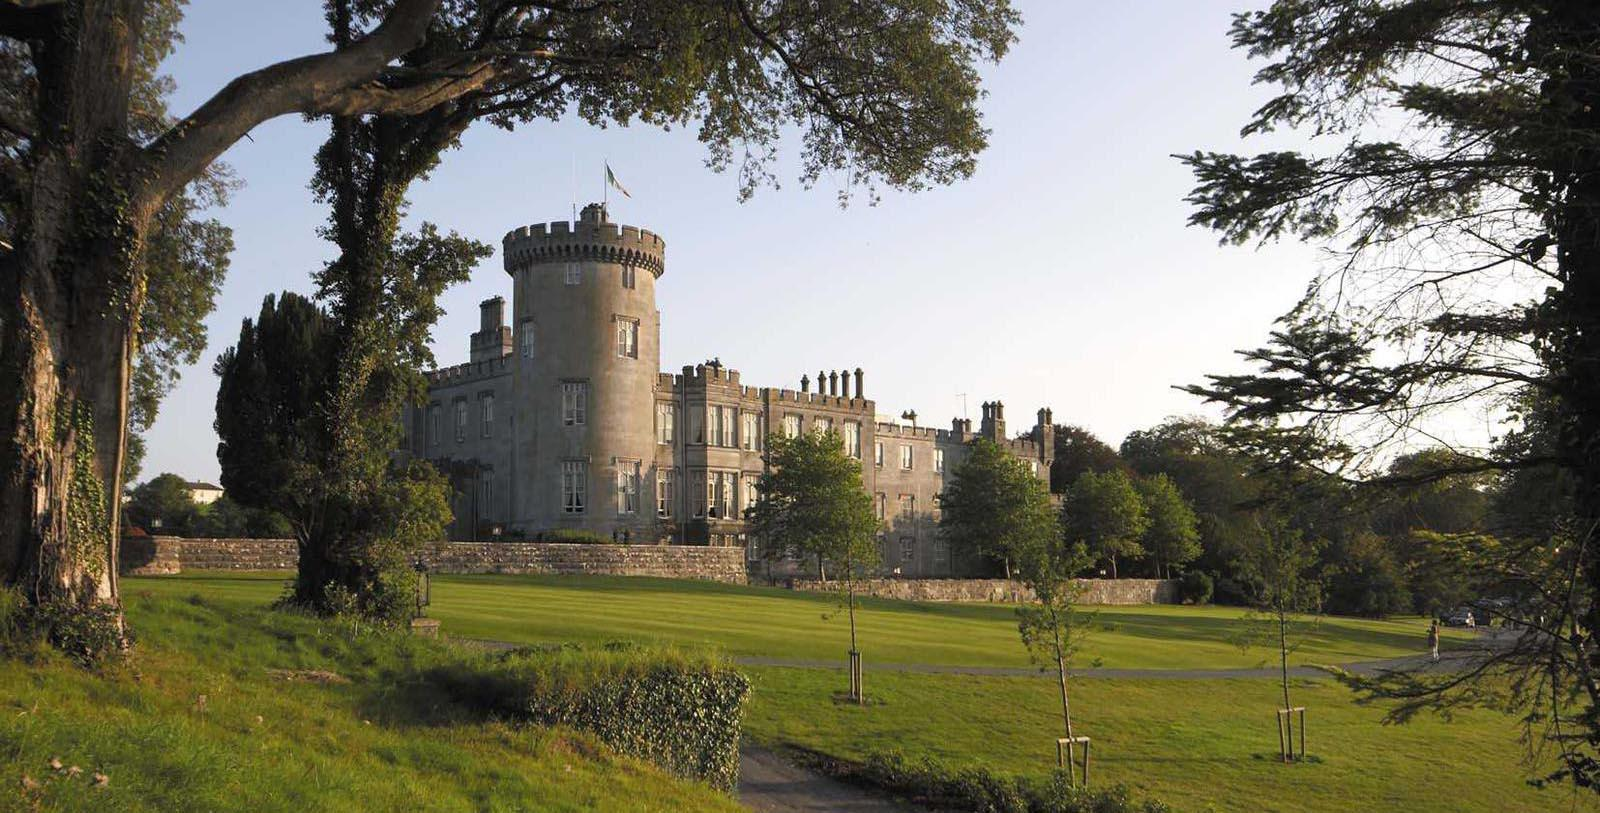 Image of hotel exterior Dromoland Castle Hotel, 1014, Member of Historic Hotels Worldwide, in County Clare, Ireland, Special Offers, Discounted Rates, Families, Romantic Escape, Honeymoons, Anniversaries, Reunions